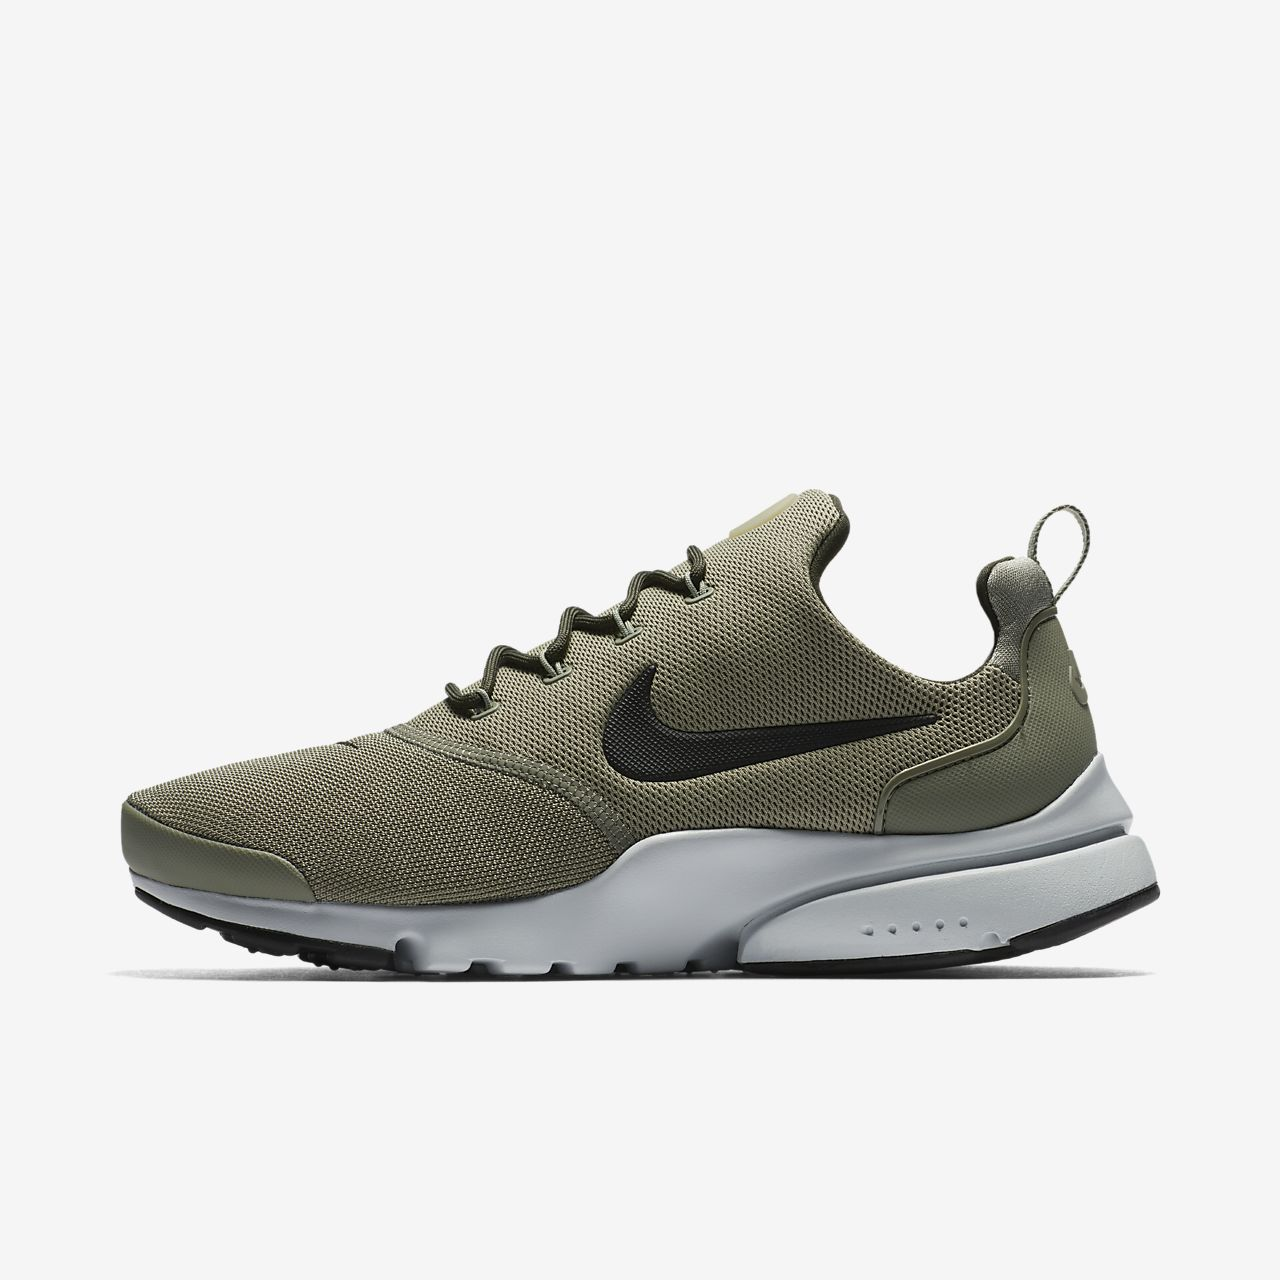 outlet store 124fb 04652 ... Chaussure Nike Presto Fly pour Homme